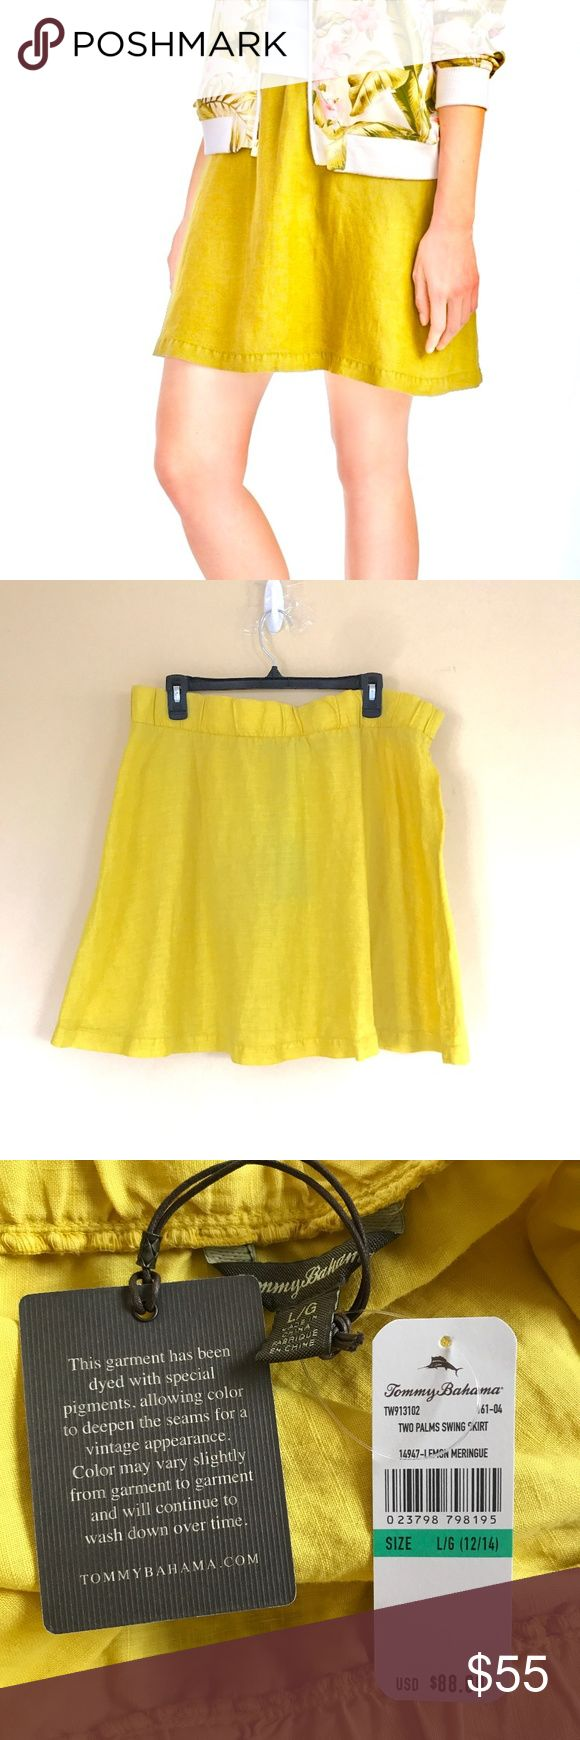 "Tommy Bahama 100% Linen Two Palms Swing Skirt NWT New with tags Tommy Bahama Two Palms Swing Skirt 100% Cotton Gorgeous bright yellow color! ""Lemon merengue"" Perfect for the summer! Take it on a tropical vacation, wear as boat attire, dress it up or down. Very versatile. Size Large  Check out my closet for bundles! Tommy Bahama Skirts Mini"